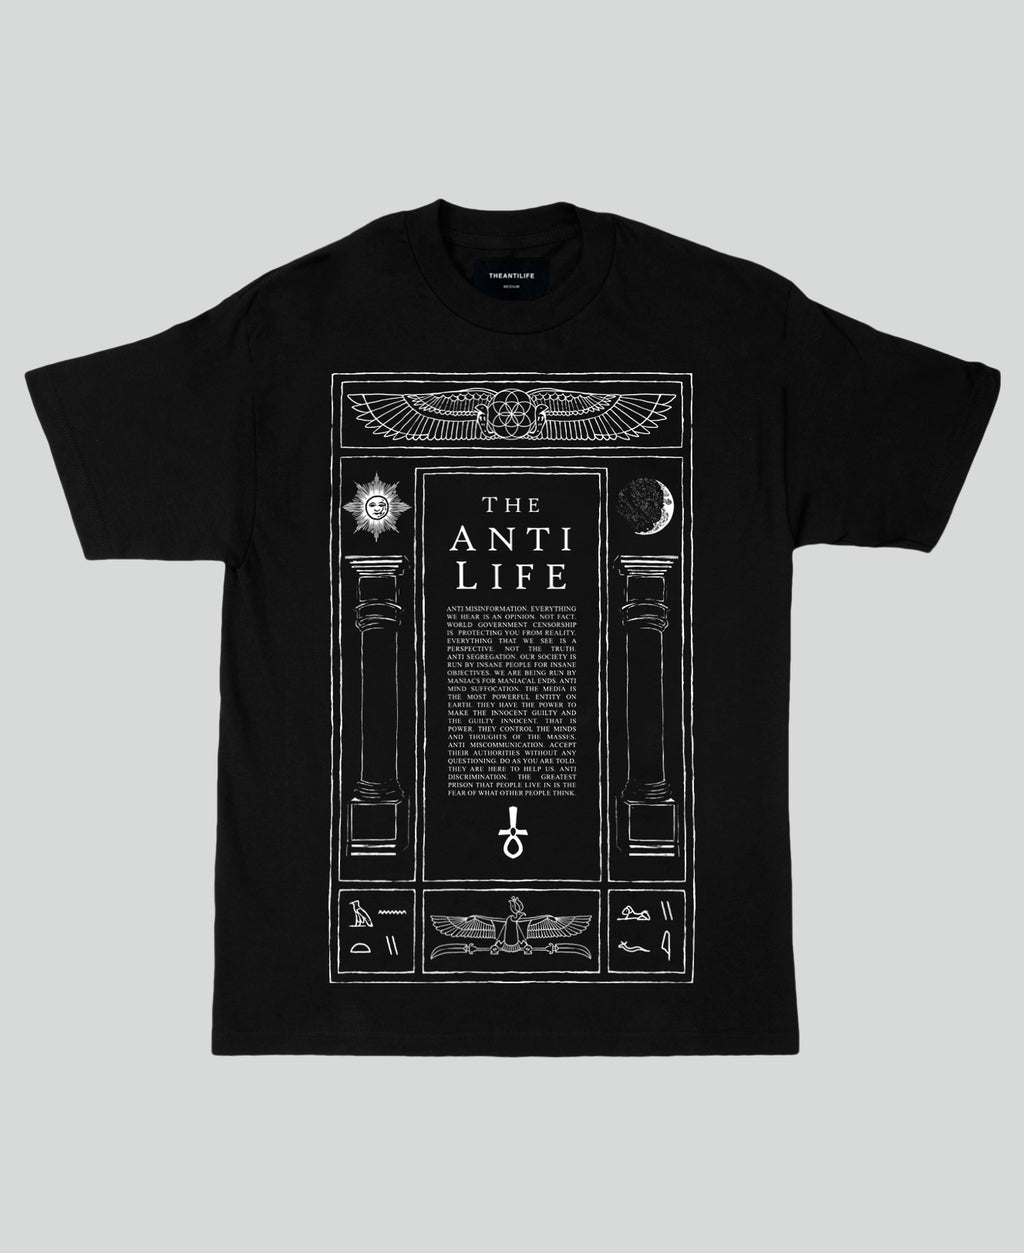 Liber Sanctus Tee - The Anti Life Ltd